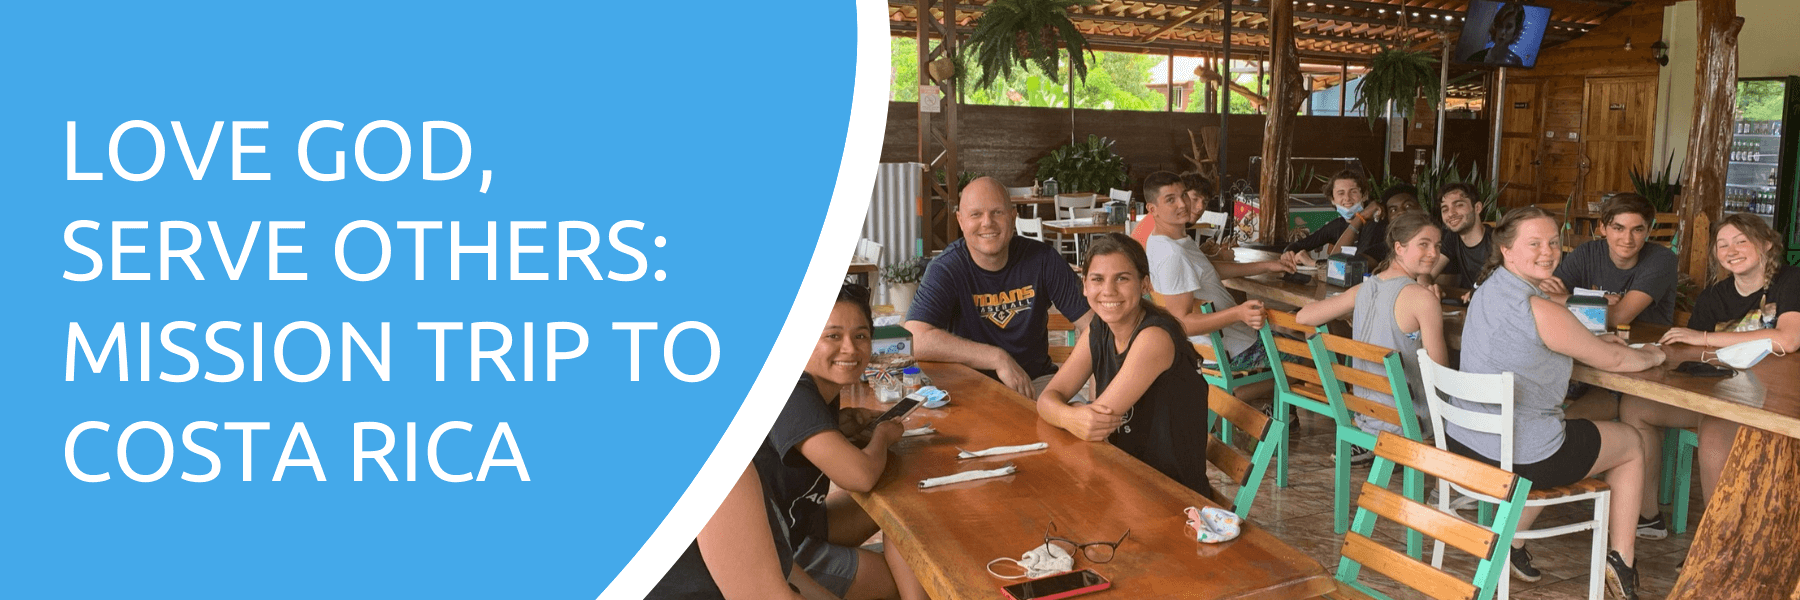 Love God, serve others: mission trip to Costa Rica